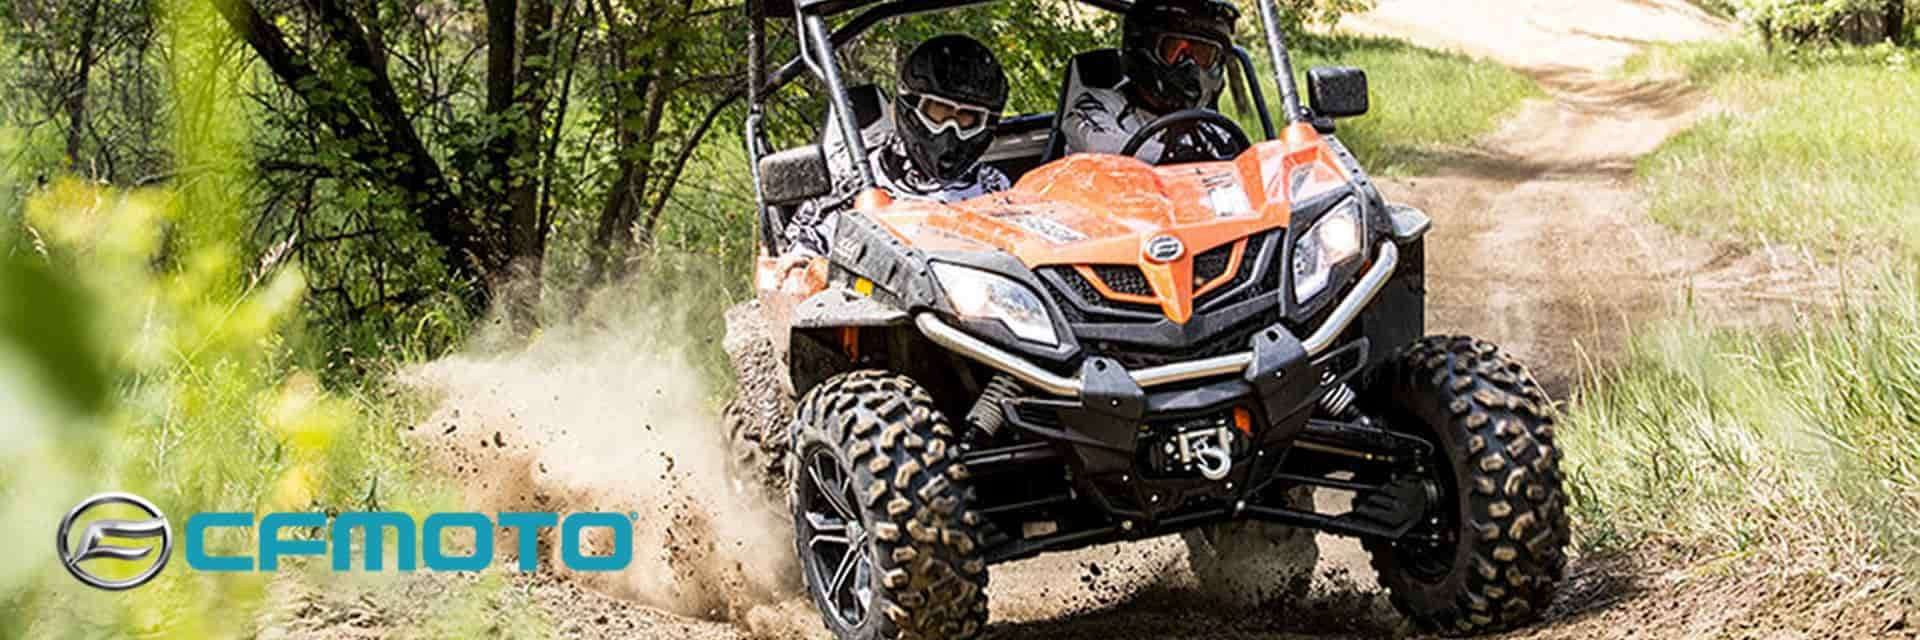 CFMoto is available at Ronnie's Motors Sports | Guilderland, NY